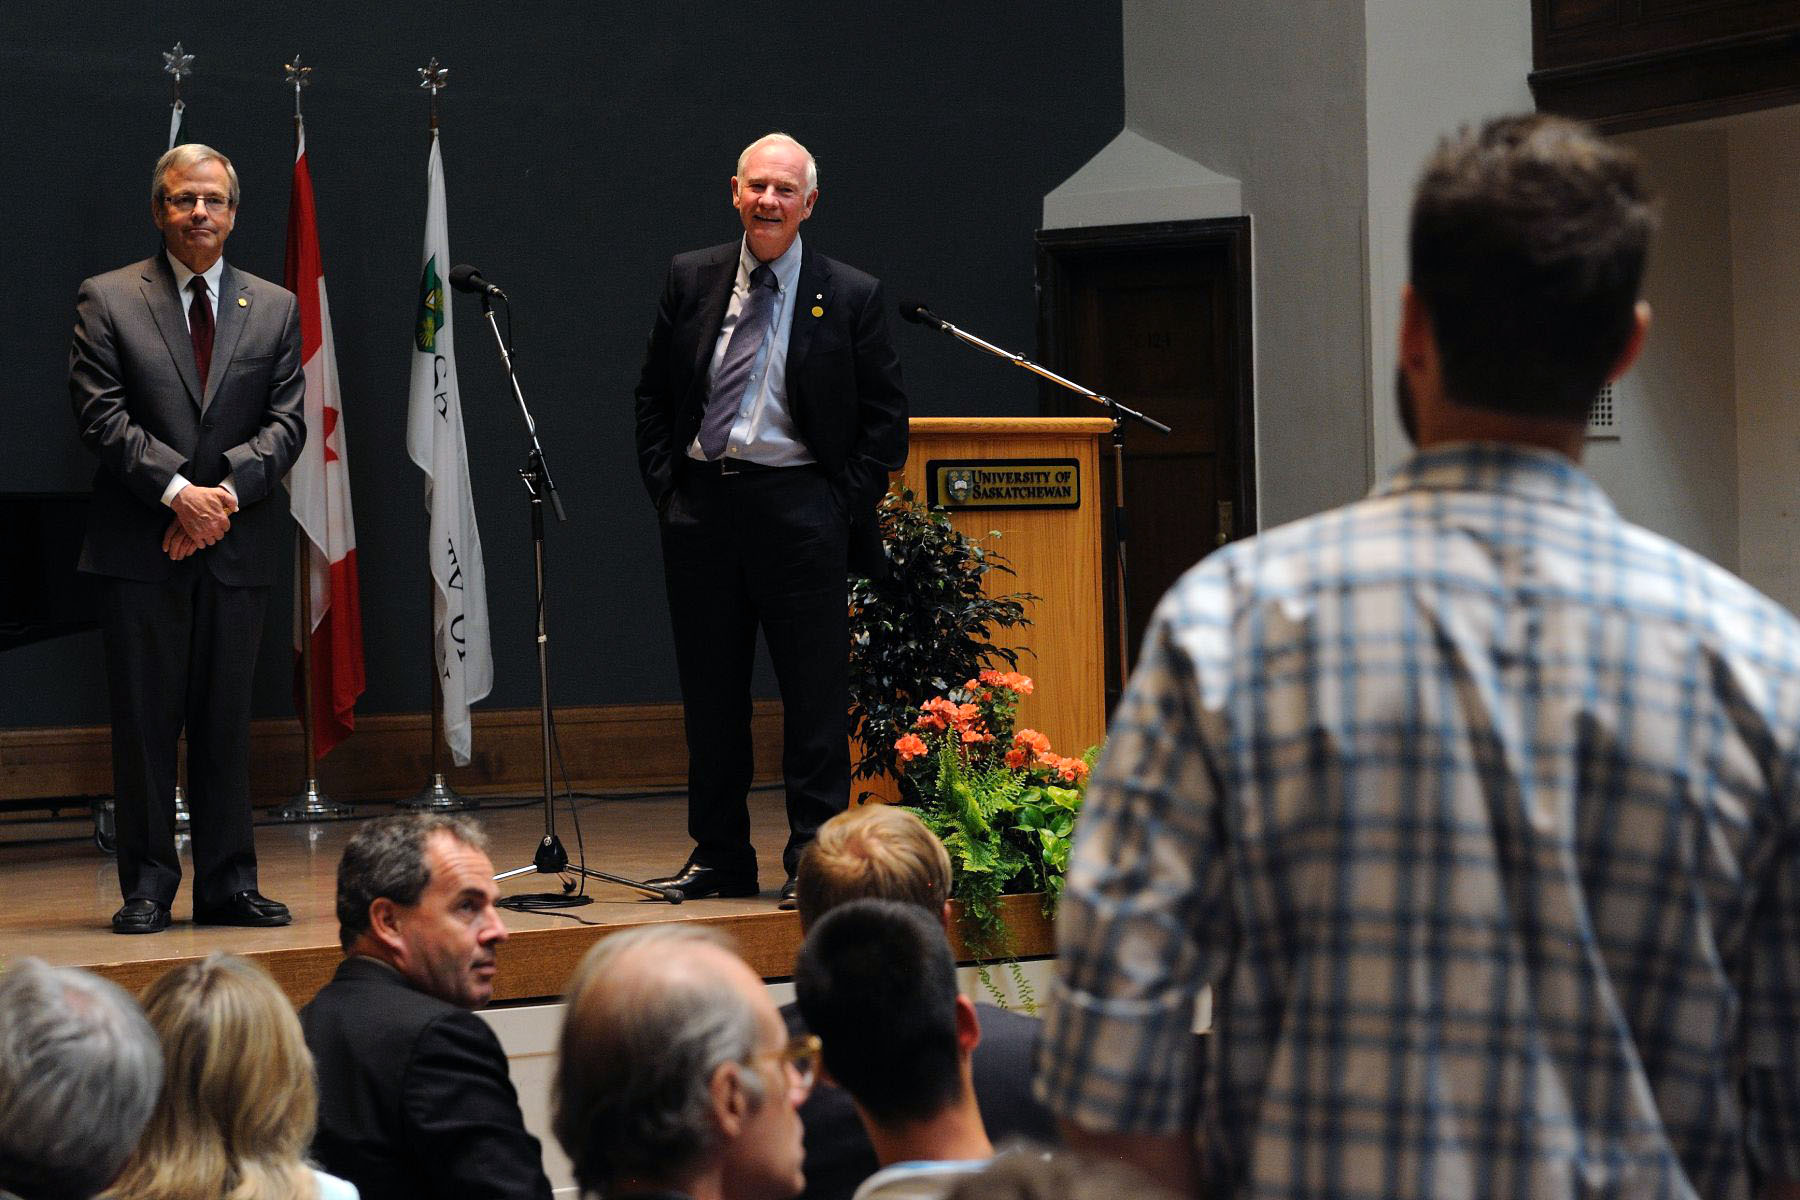 Following his speech, the Governor General answered questions from students.